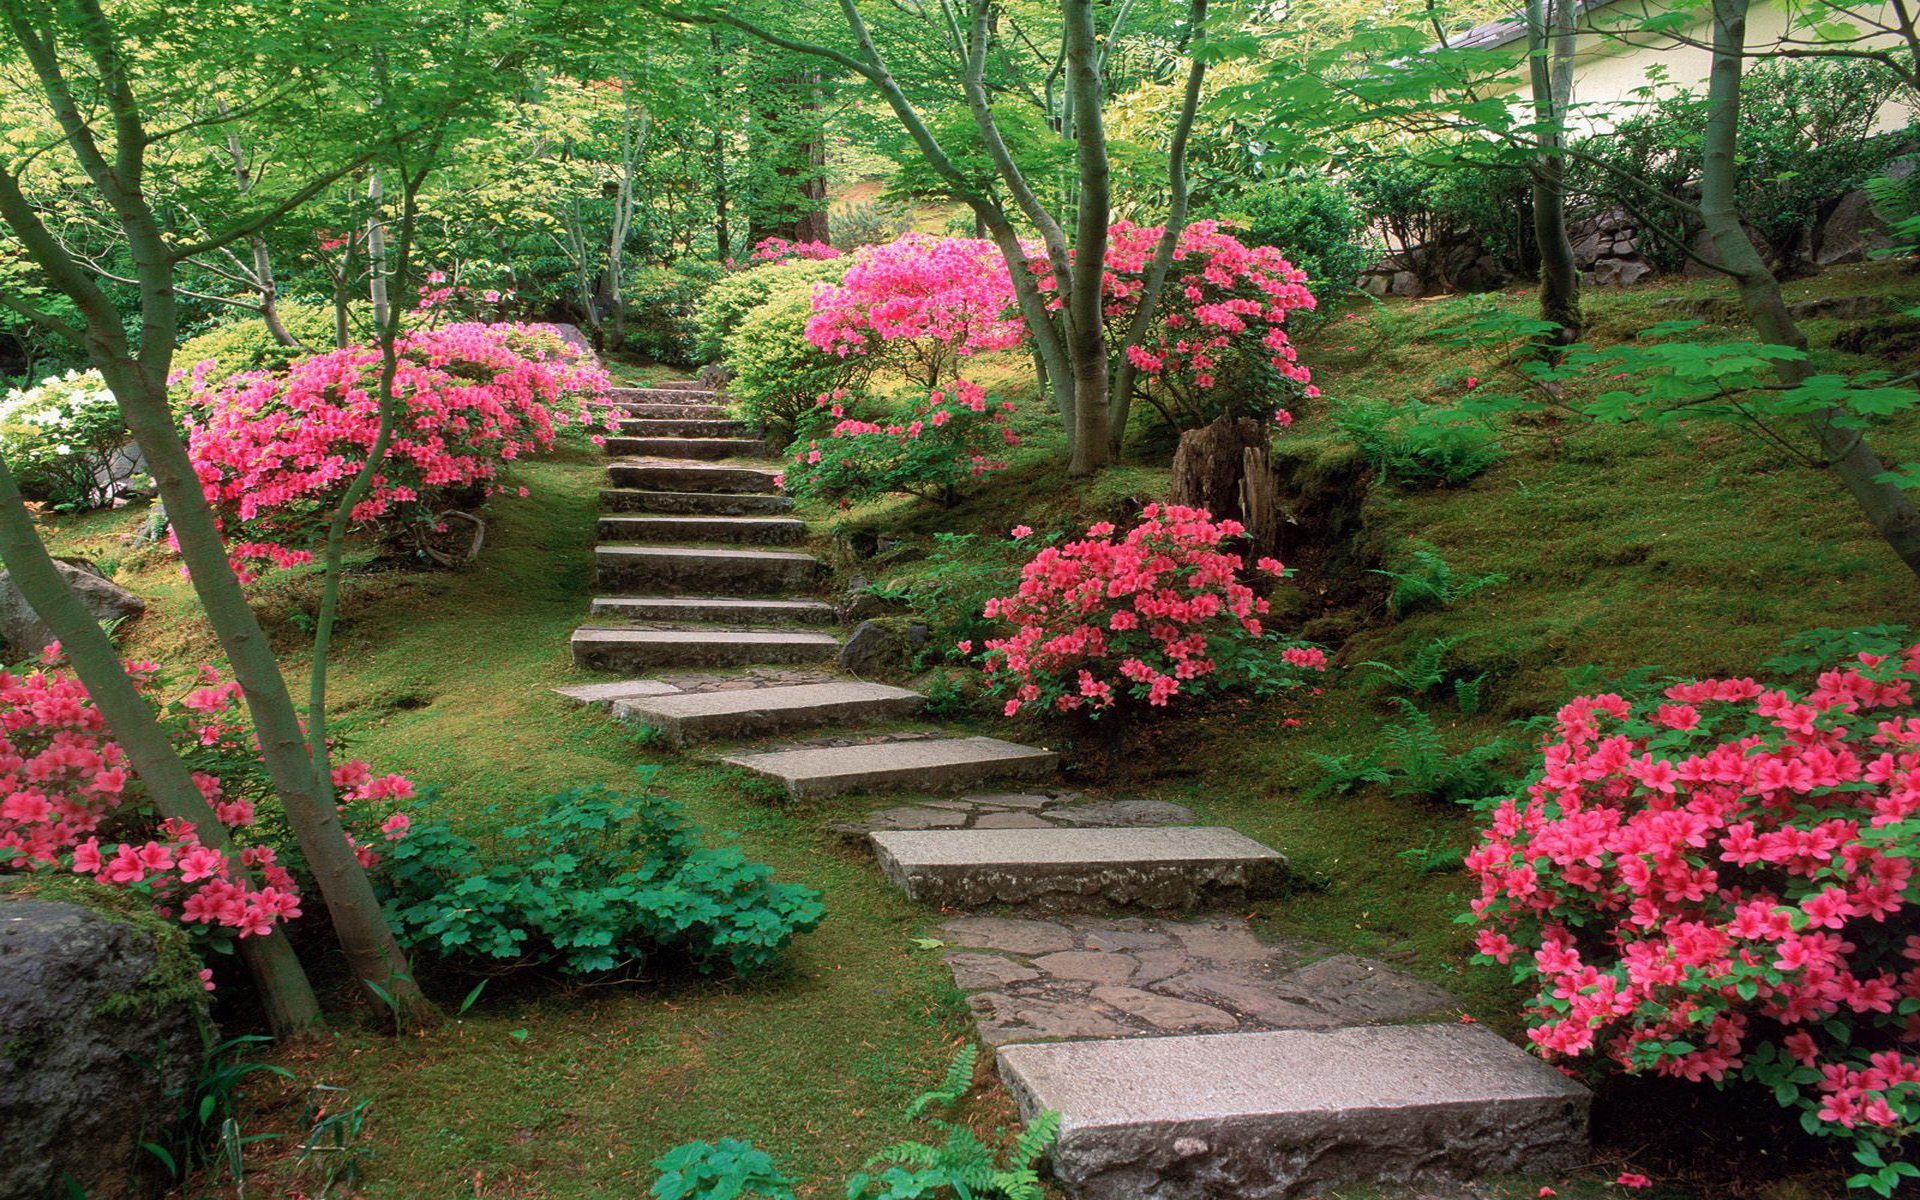 Garden Hd Image Search Results Landscaping Gallery 1920x1200